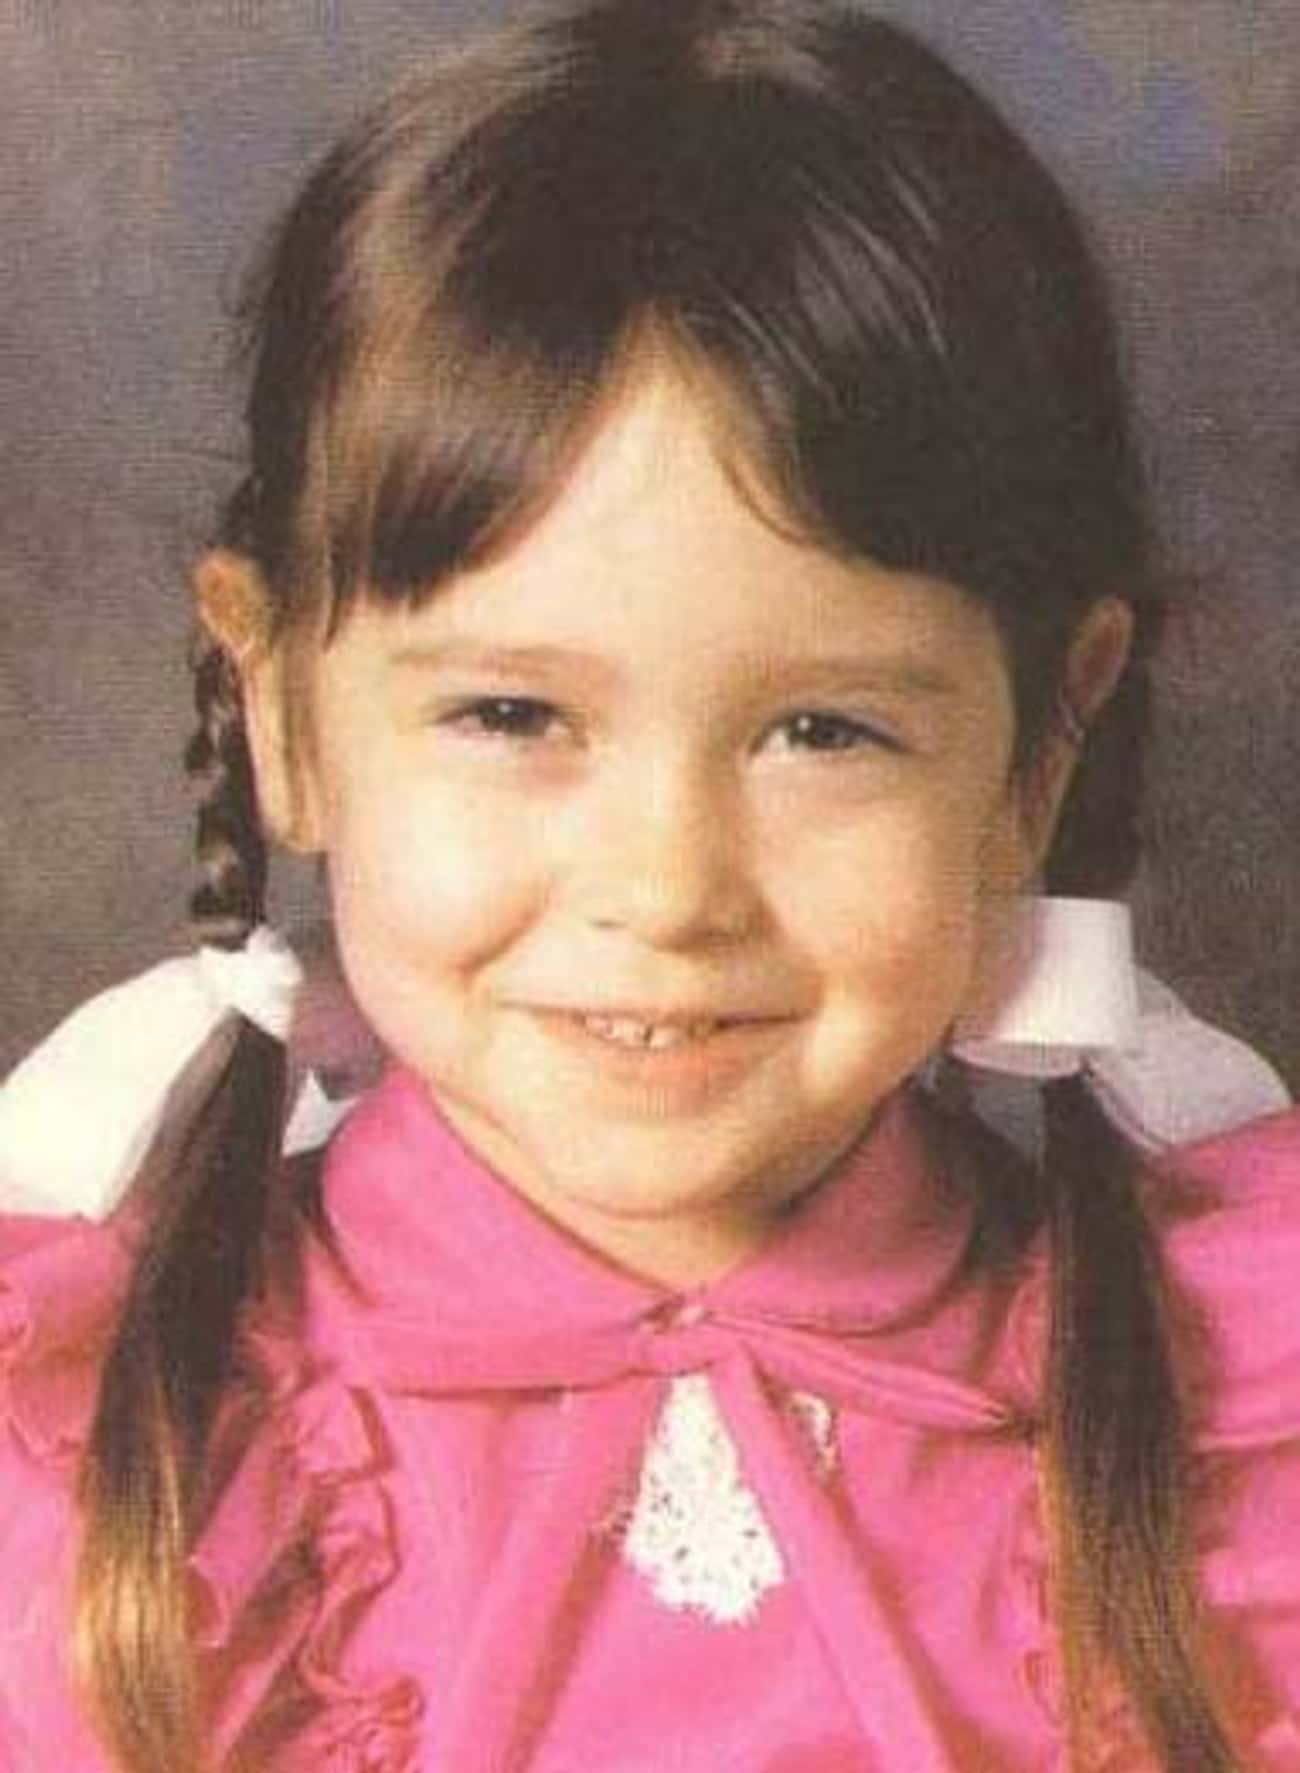 Baby Jennifer Love Hewitt is listed (or ranked) 1 on the list 30 Pictures of Young Jennifer Love Hewitt